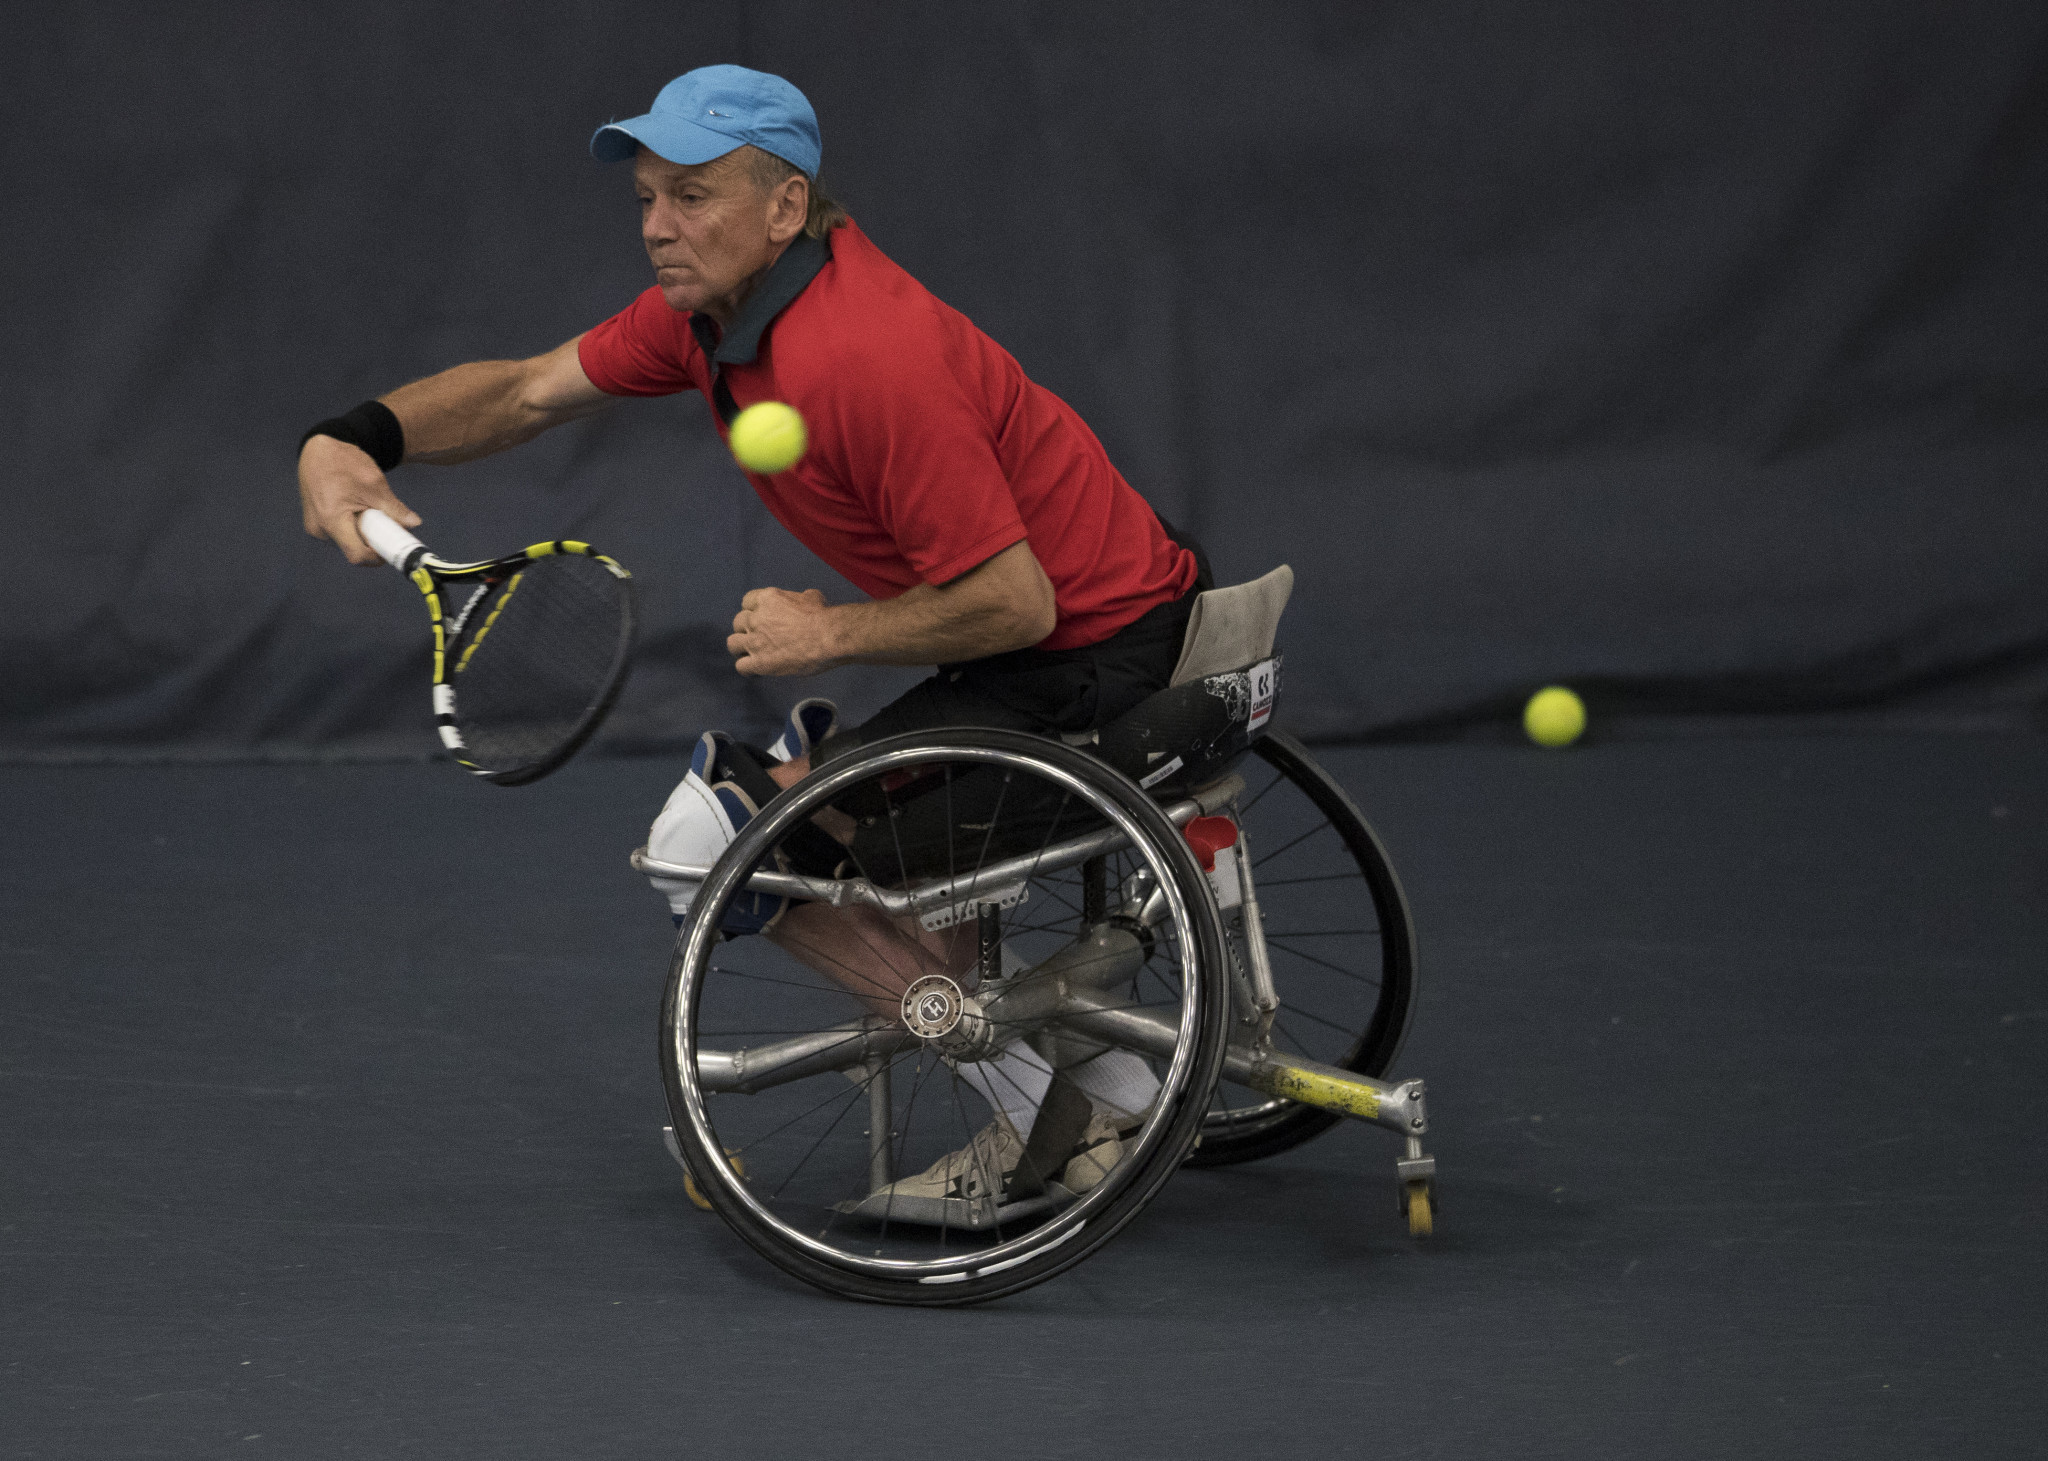 Austria's men edge past United States on opening day of ITF Wheelchair Tennis World Team Cup